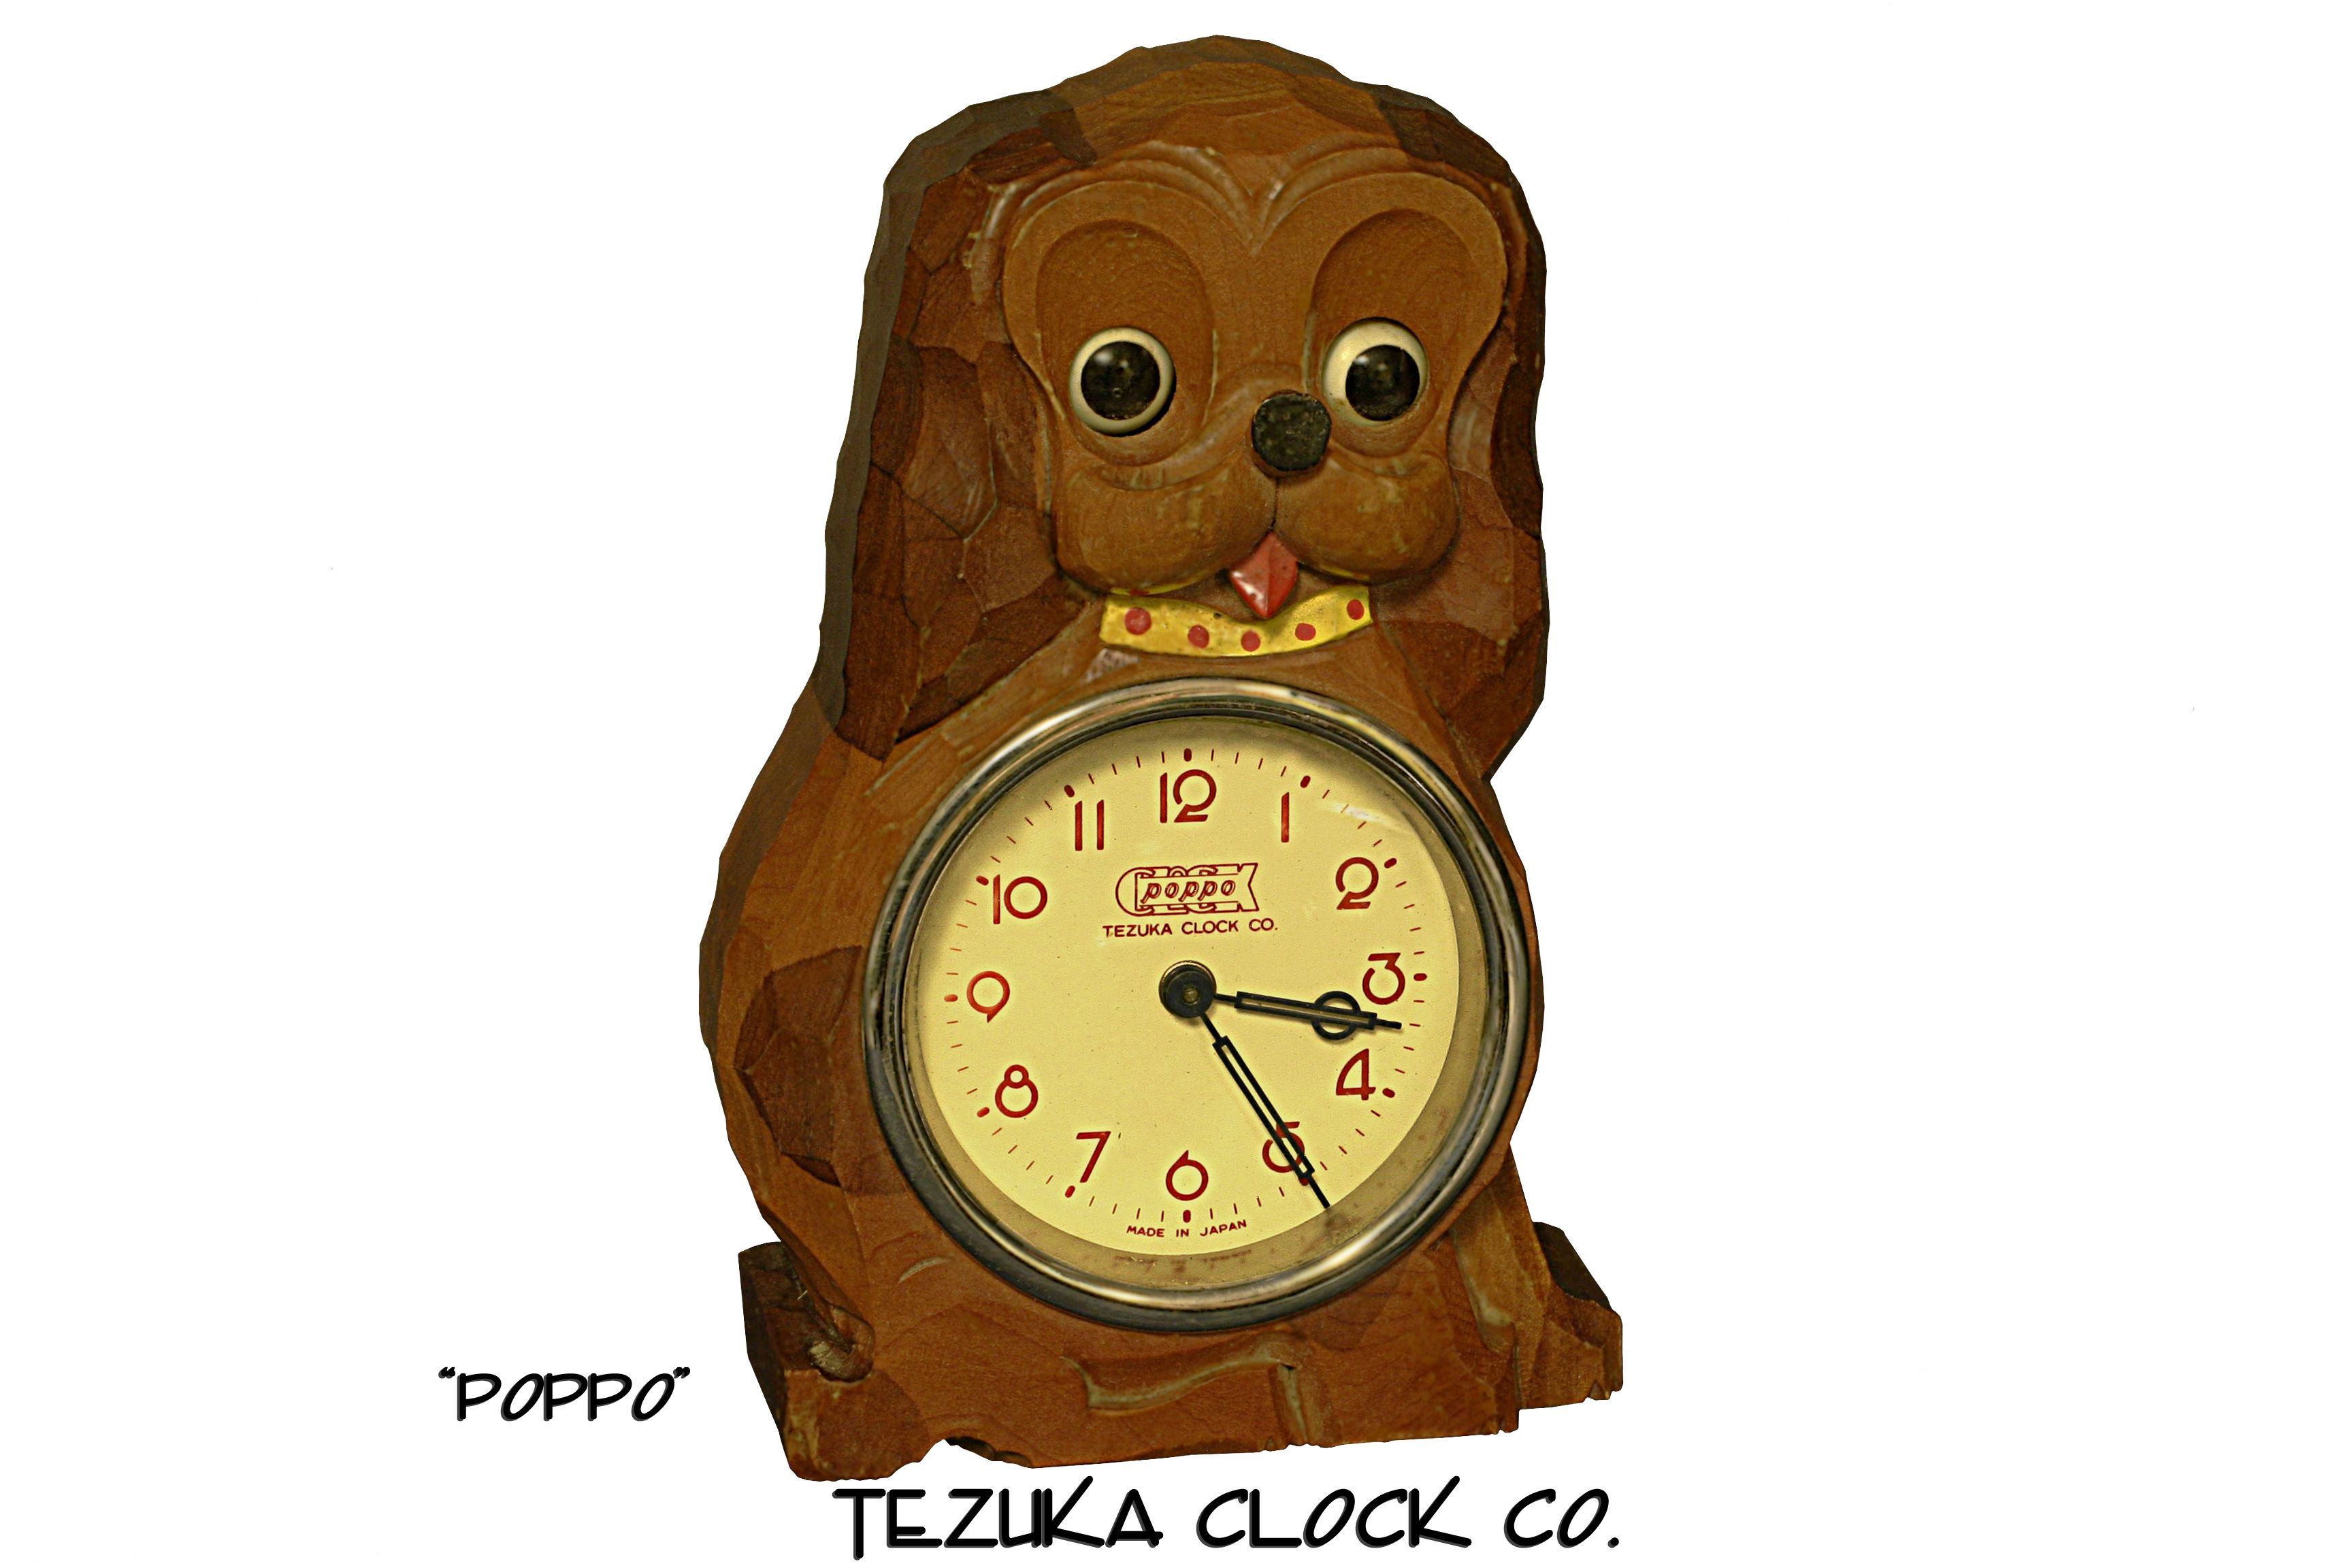 "Clock Meiko Tokei Poppo2"" Carved wood dog with moving"